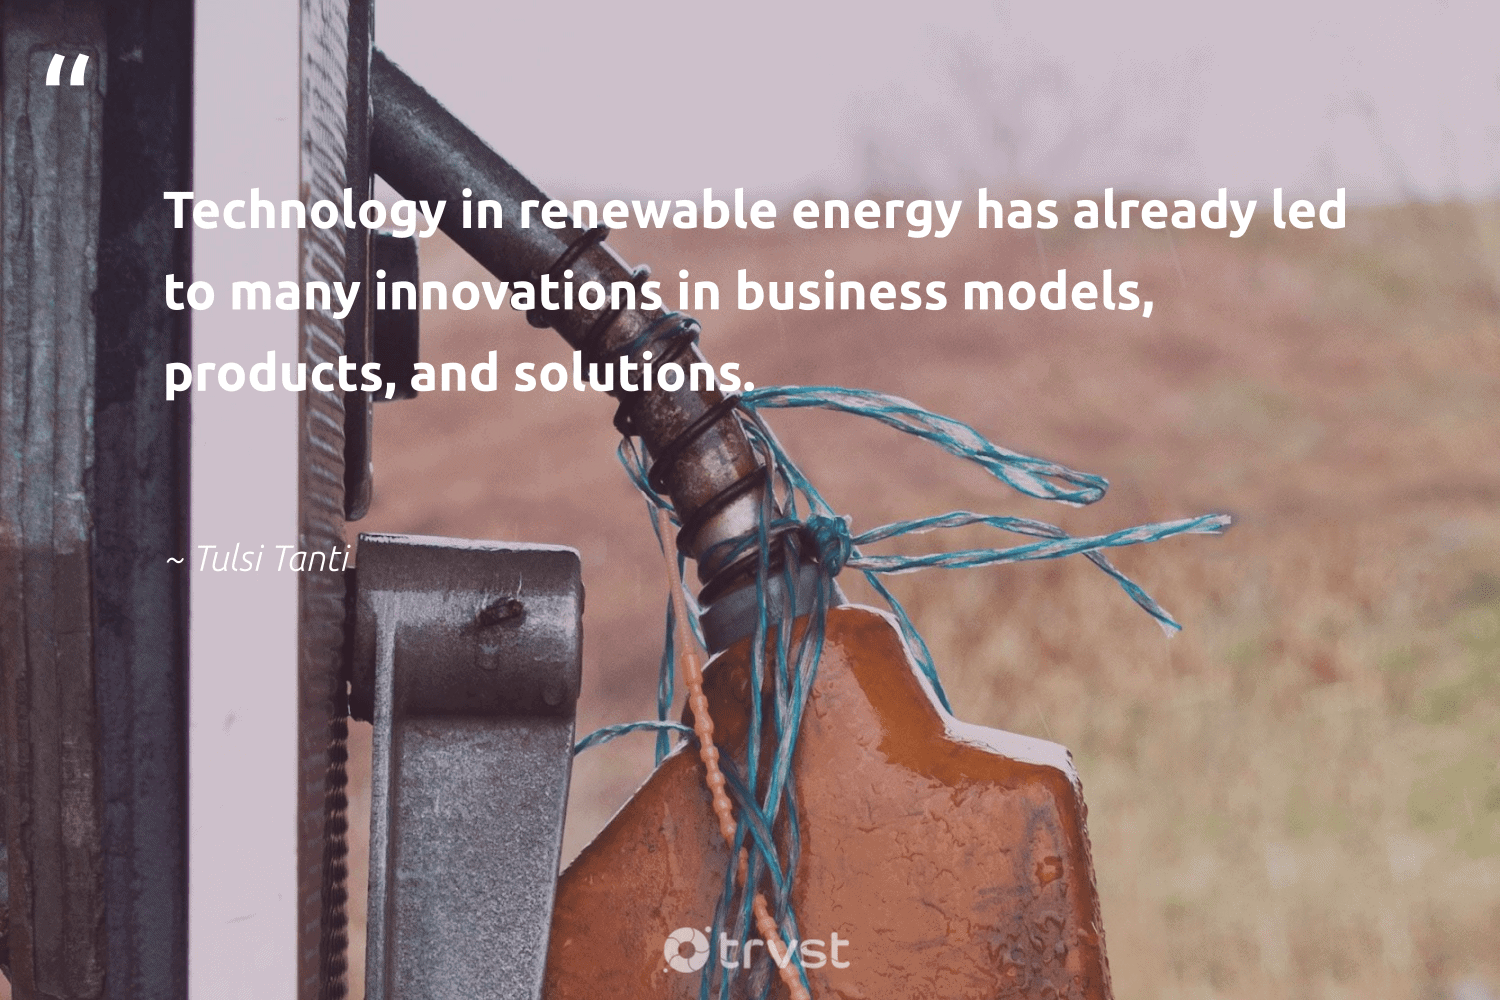 """""""Technology in renewable energy has already led to many innovations in business models, products, and solutions.""""  - Tulsi Tanti #trvst #quotes #renewableenergy #energy #renewable #lowcarbon #switchfuelenergy #planetearth #gogreen #collectiveaction #affordable #100percentclean"""